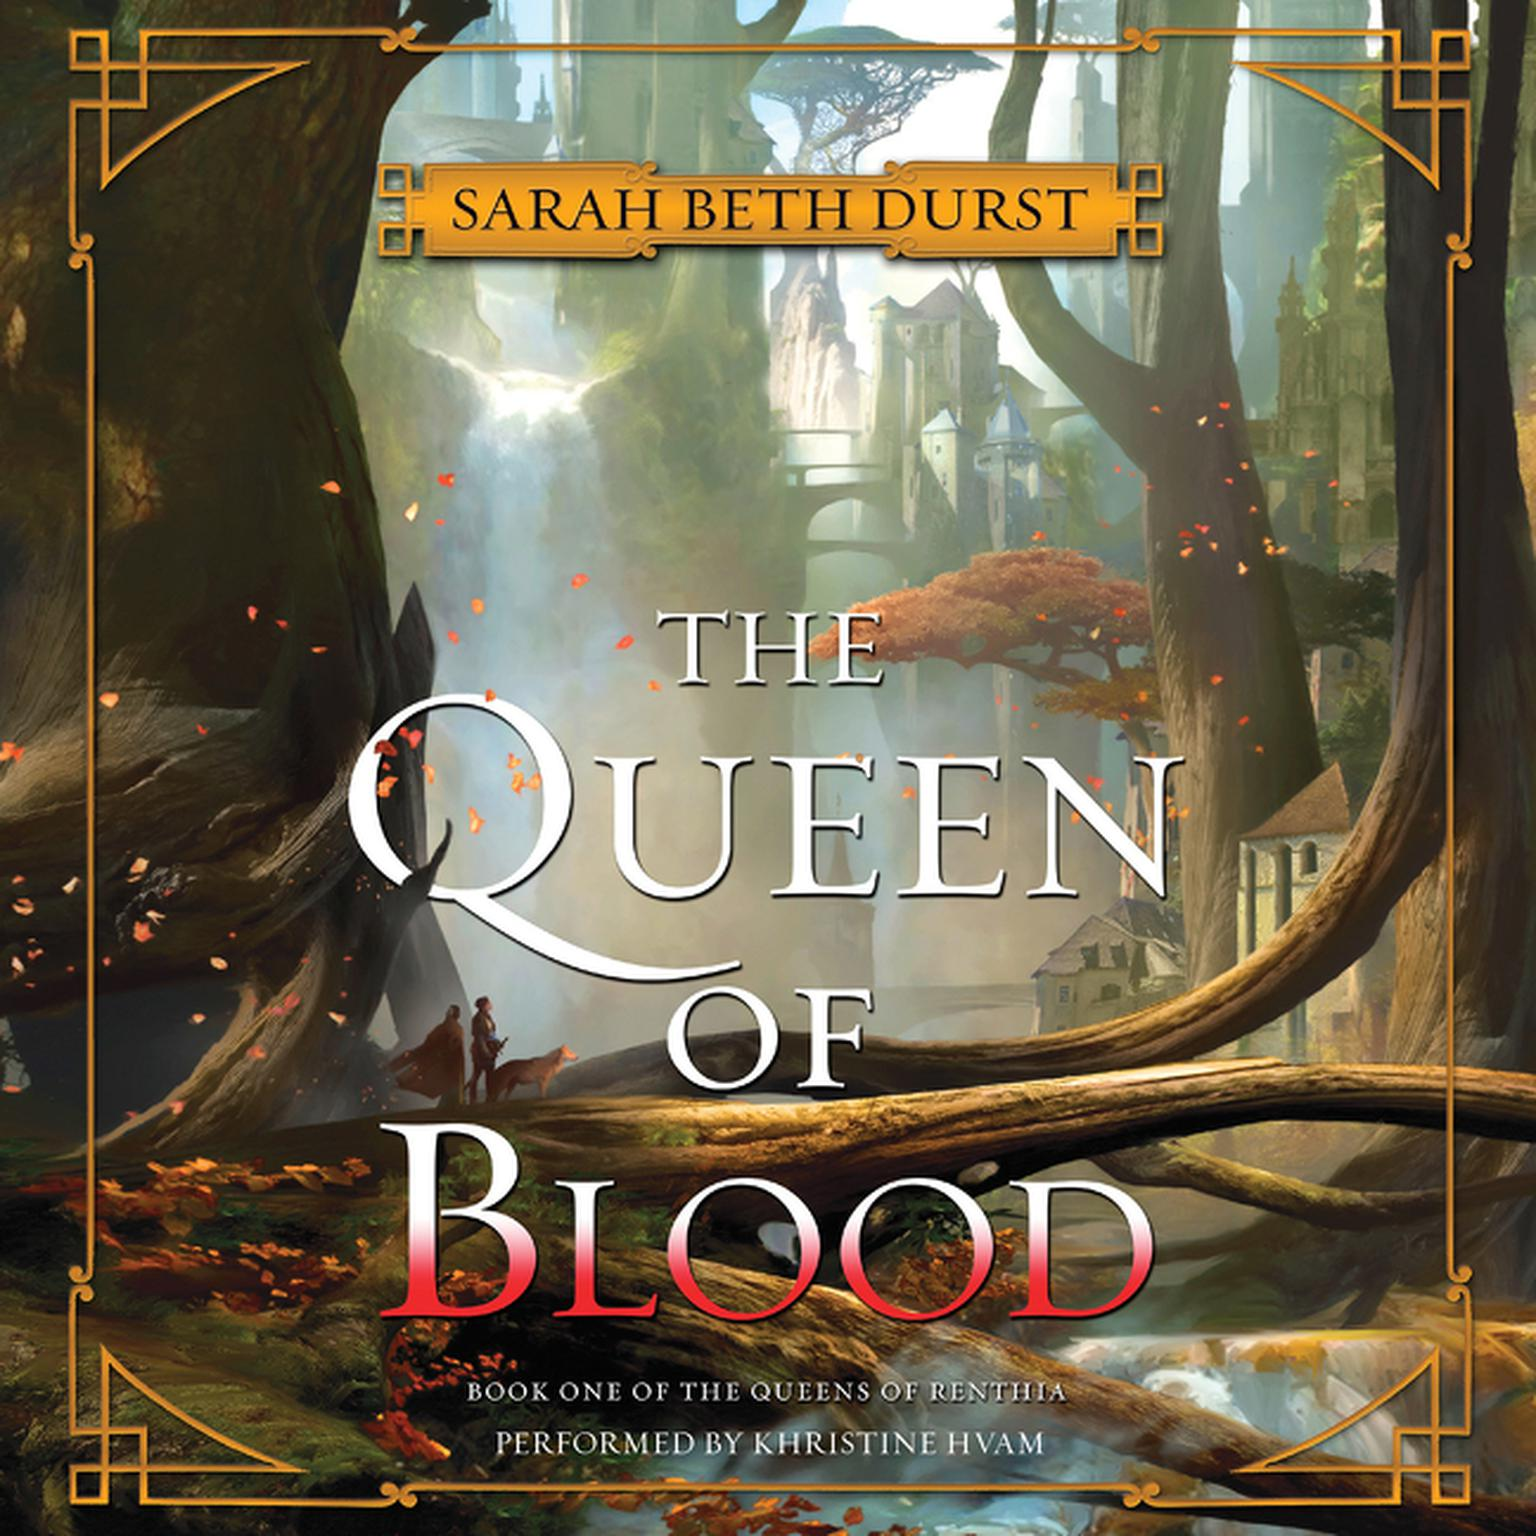 Printable The Queen of Blood: Book One of The Queens of Renthia Audiobook Cover Art